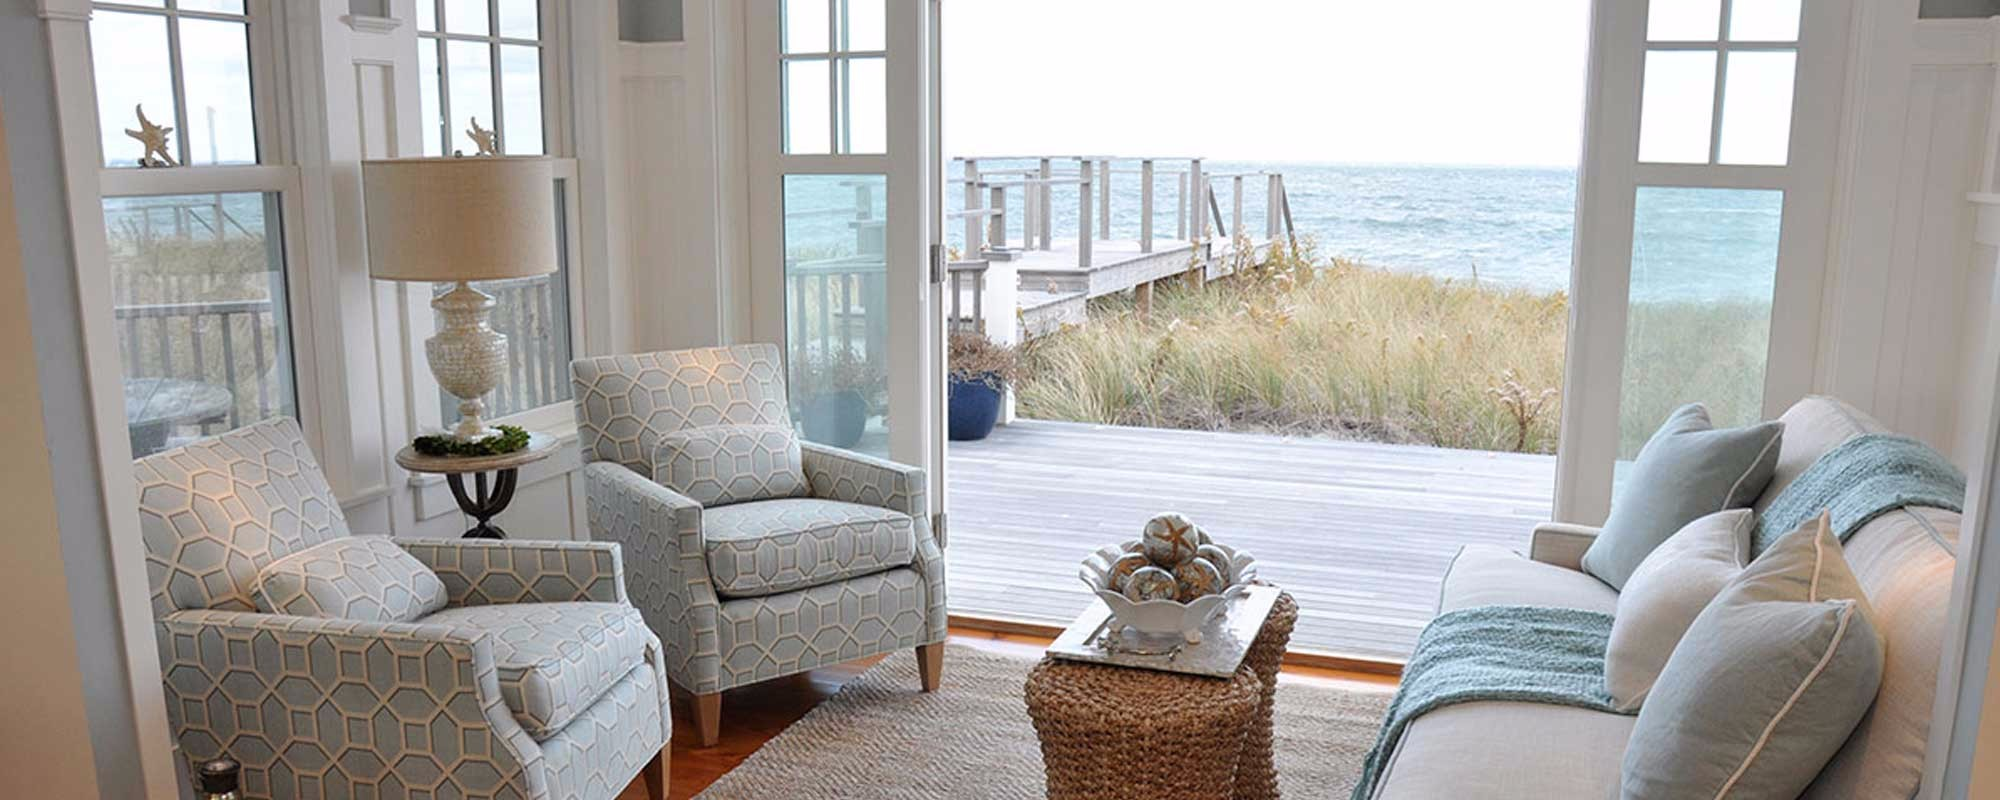 Interior design cape cod ma casabella interiors for Internal design